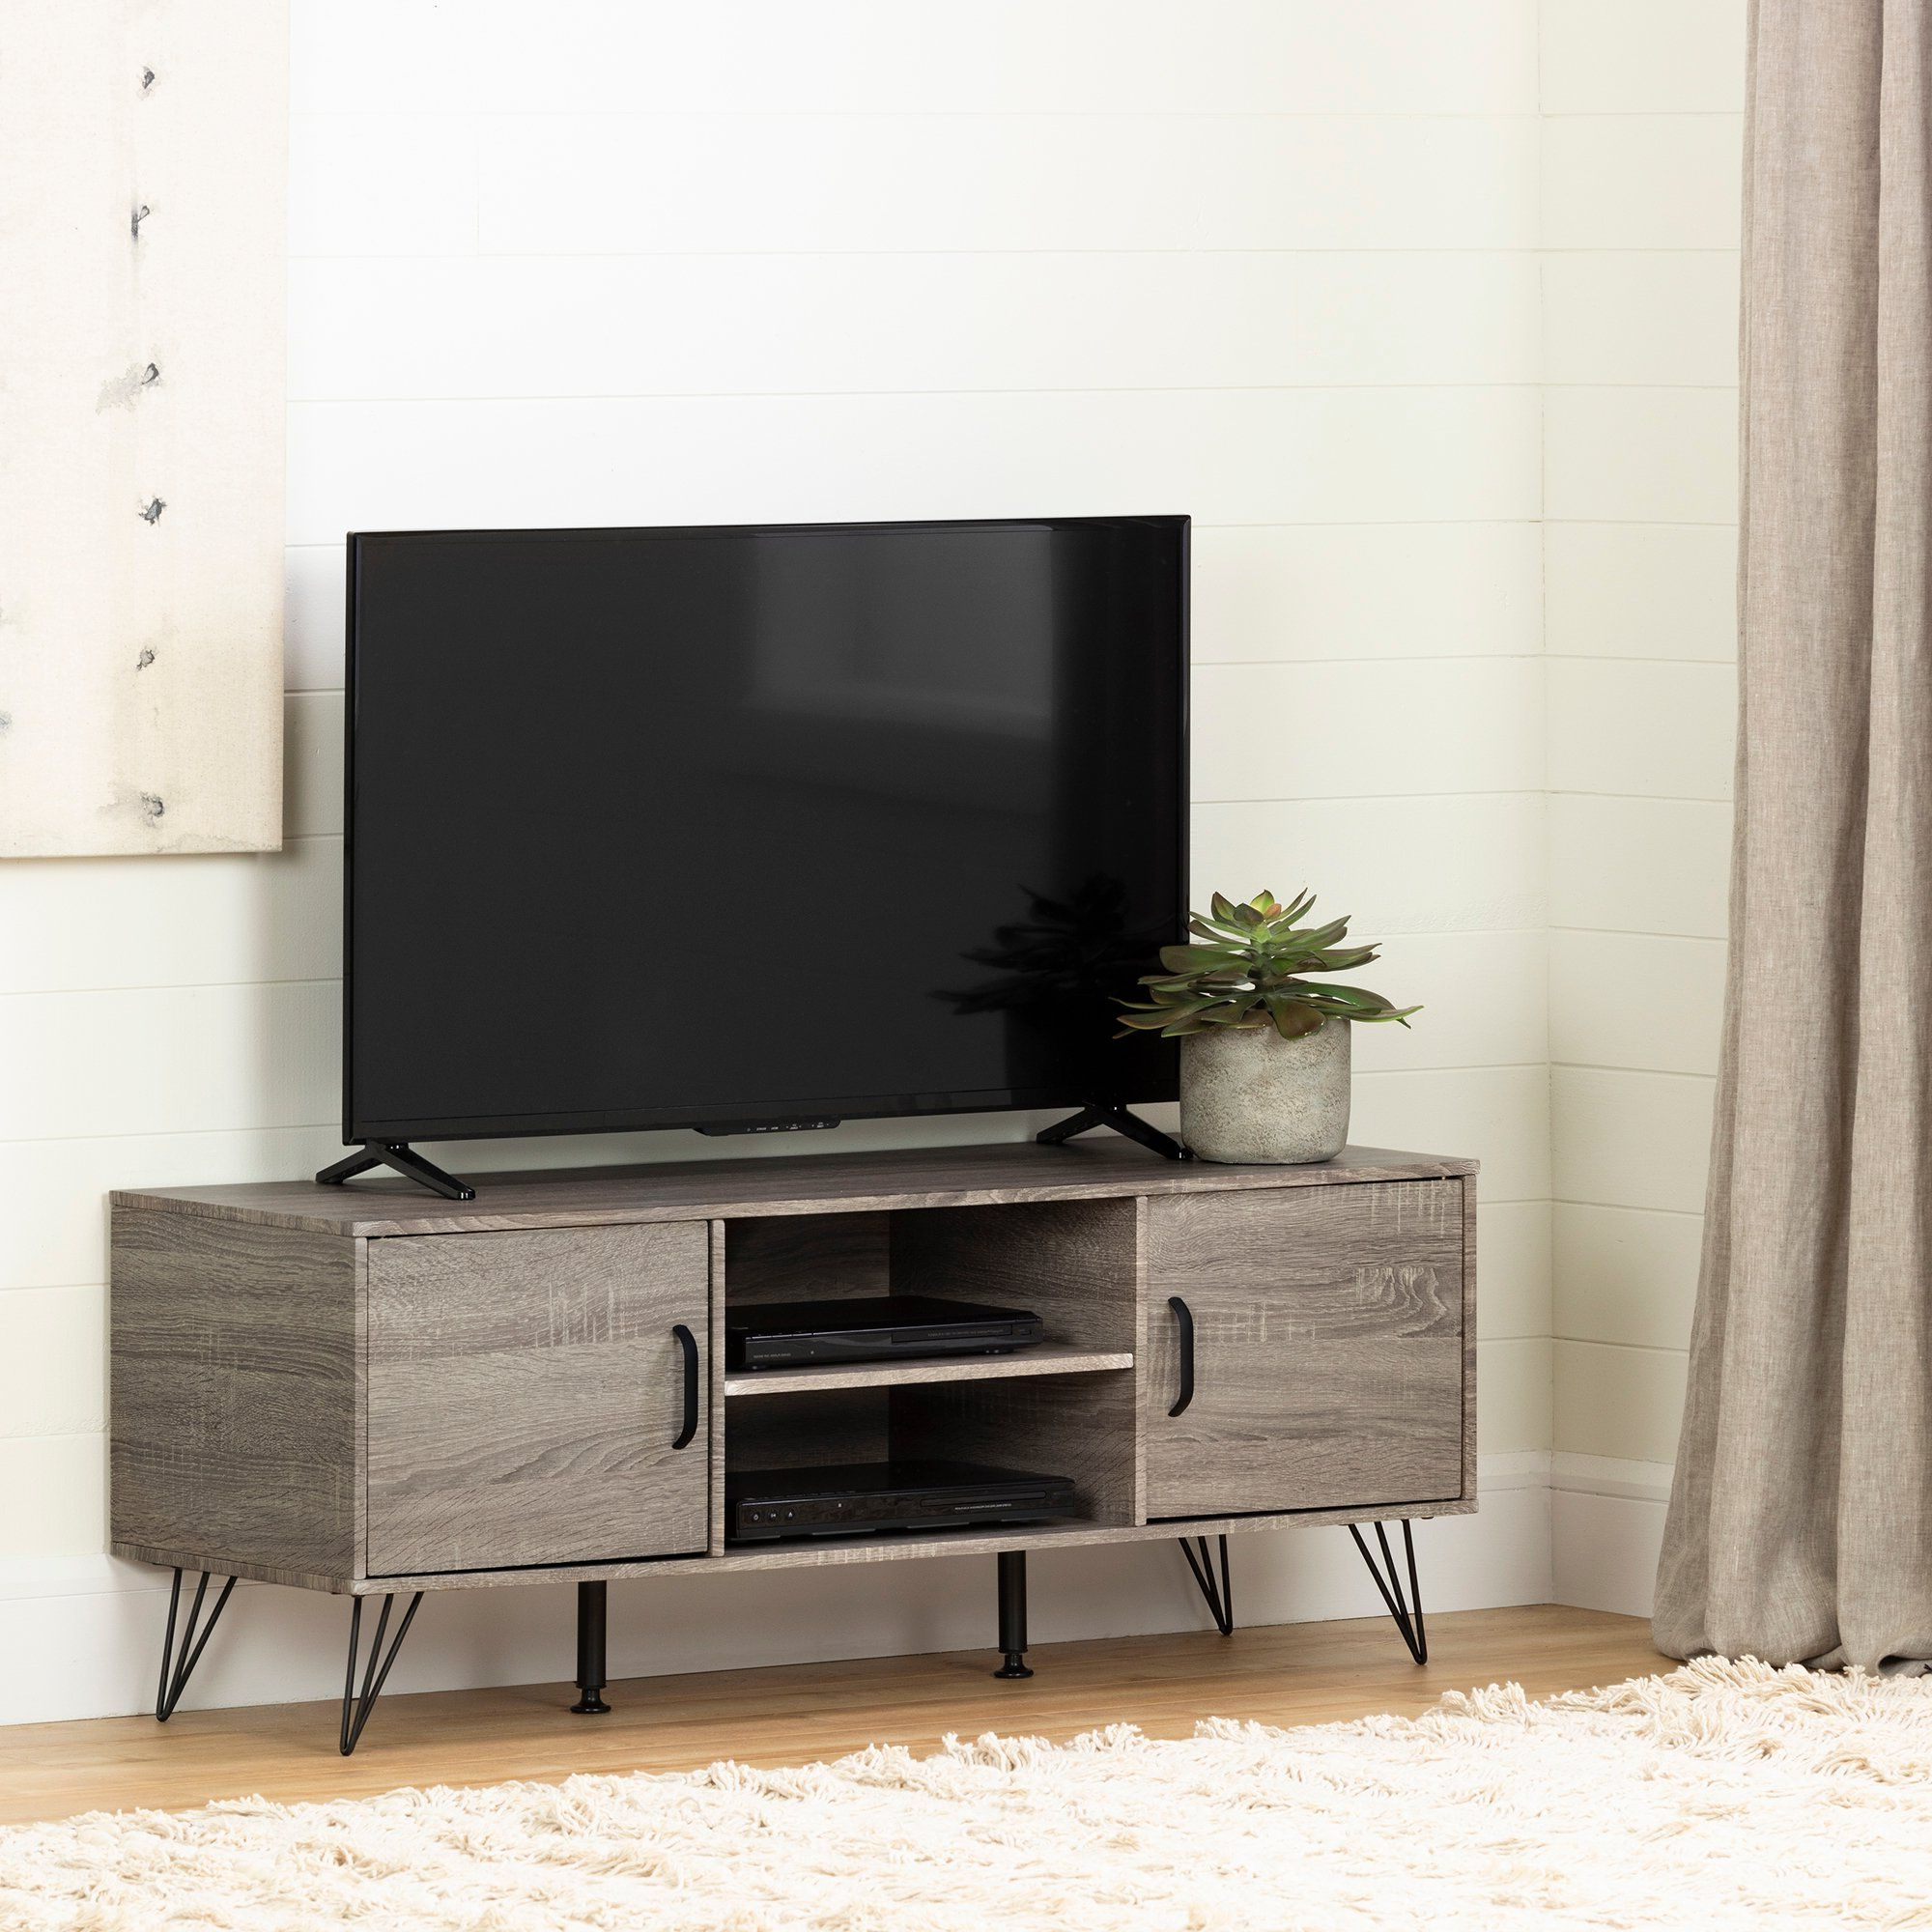 Well Known 47 Inch Oak Caramel Tv Stand With Doors – Evane In 2020 With Regard To South Shore Evane Tv Stands With Doors In Oak Camel (View 5 of 10)